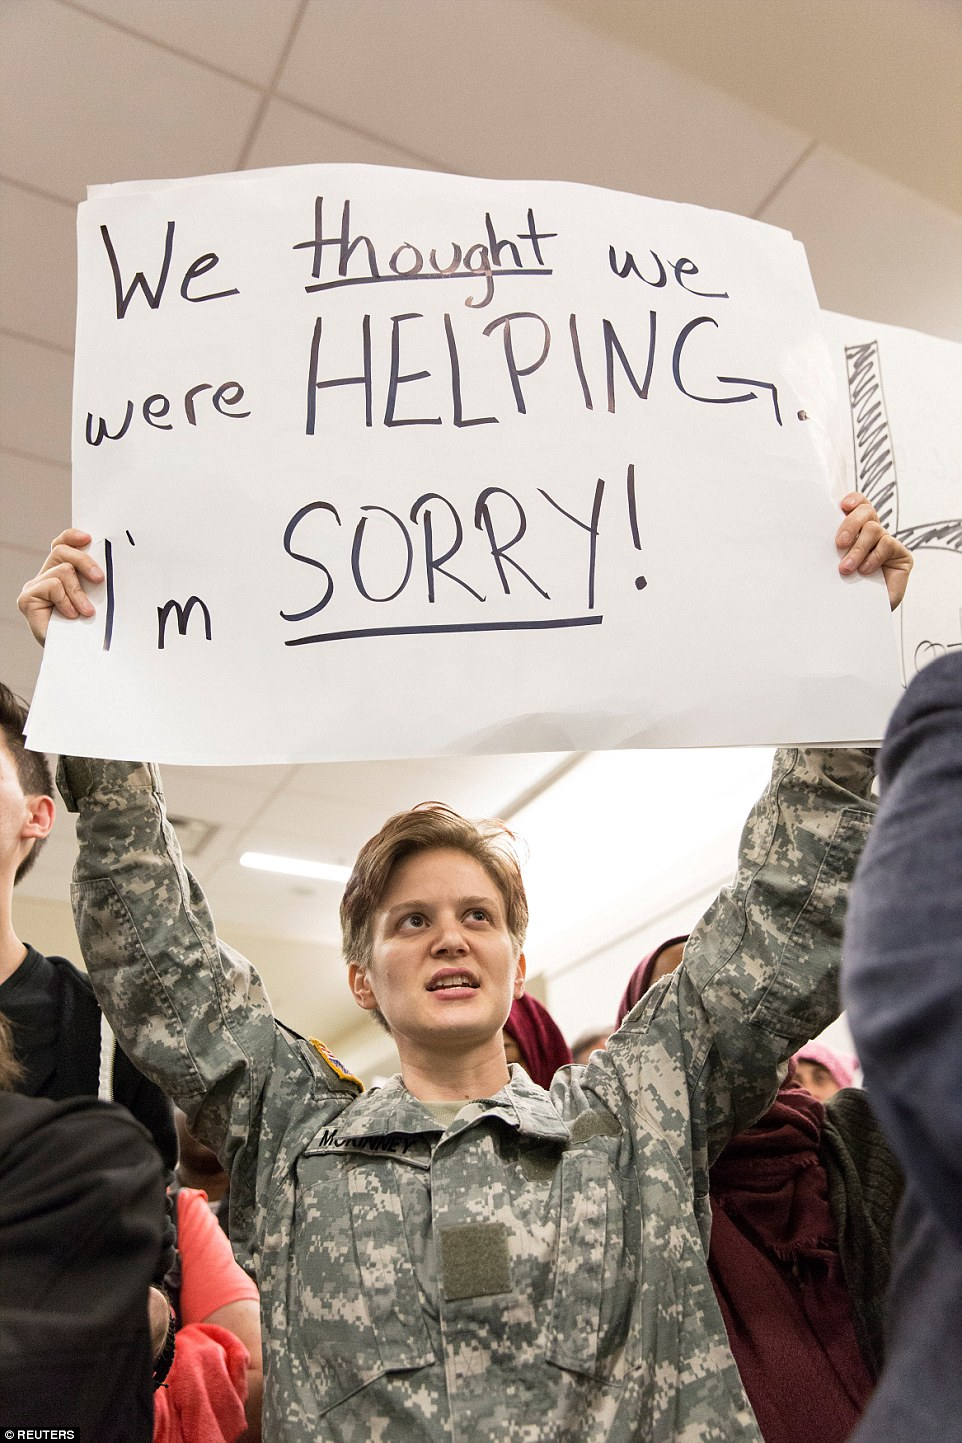 A female veteran held a sign reading 'We thought we were helping, sorry' at Dallas/Fort Worth International Airport